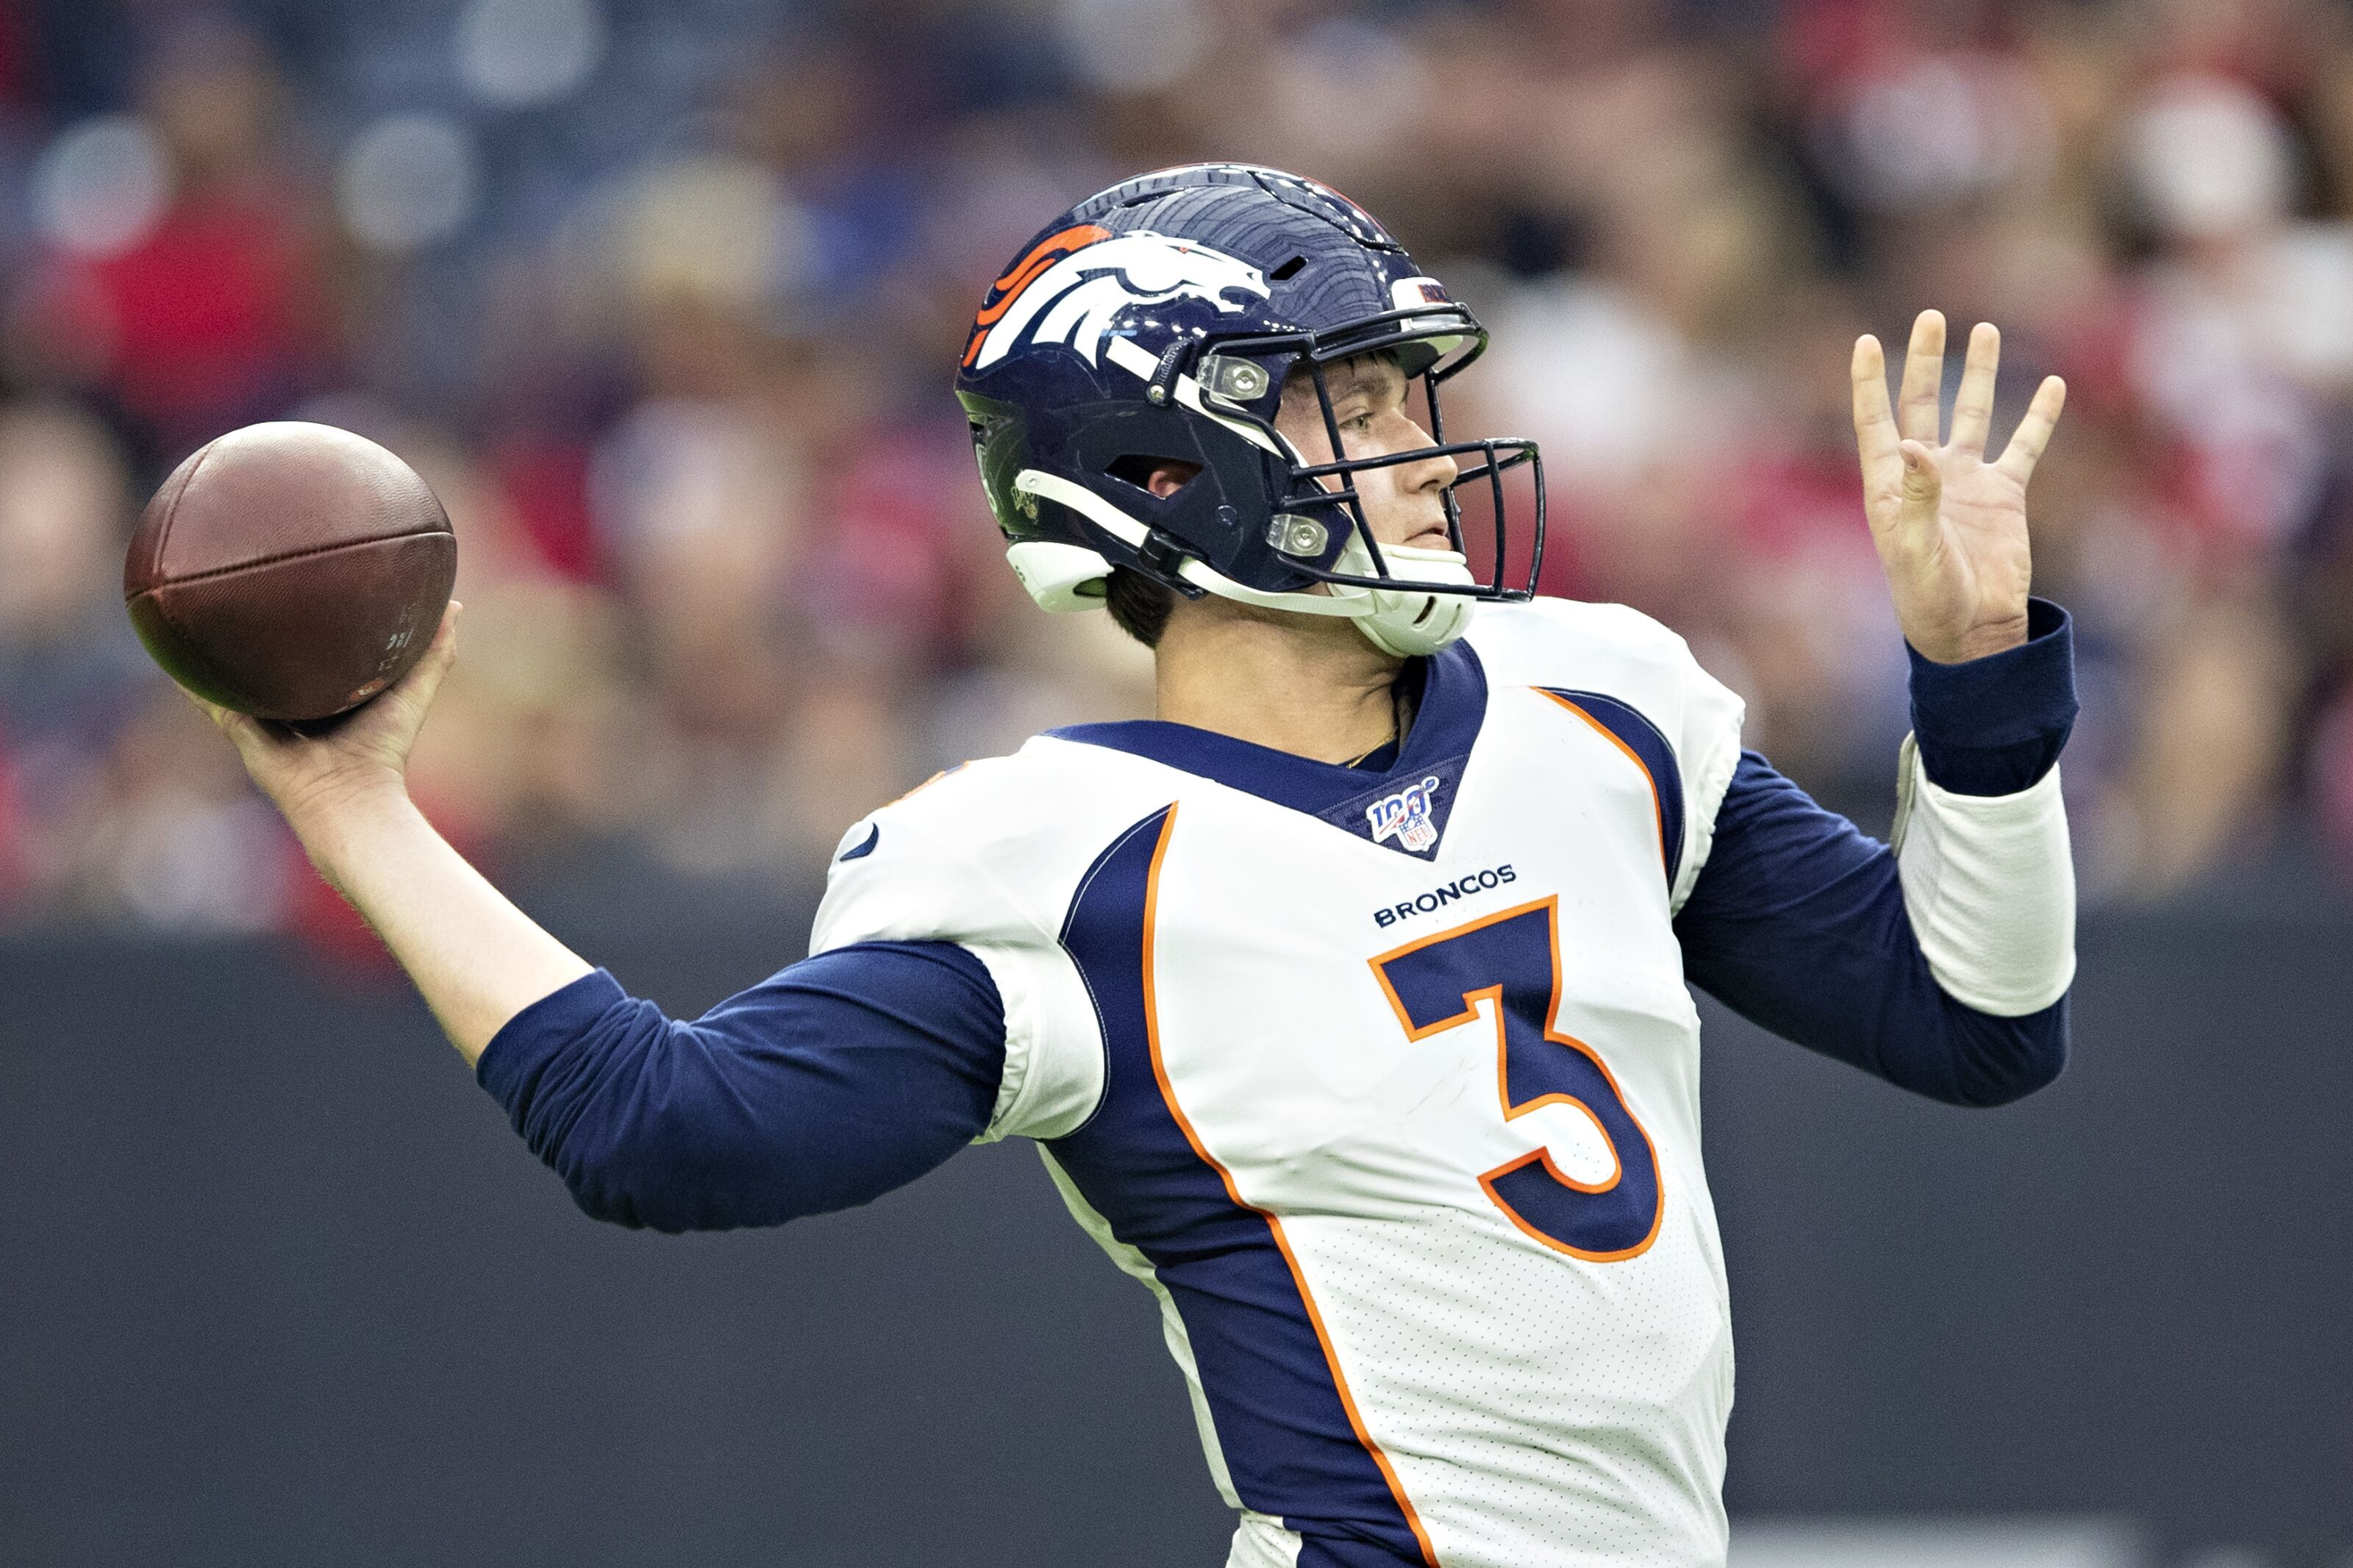 Drew Lock is rapidly accelerating the Broncos turnaround time